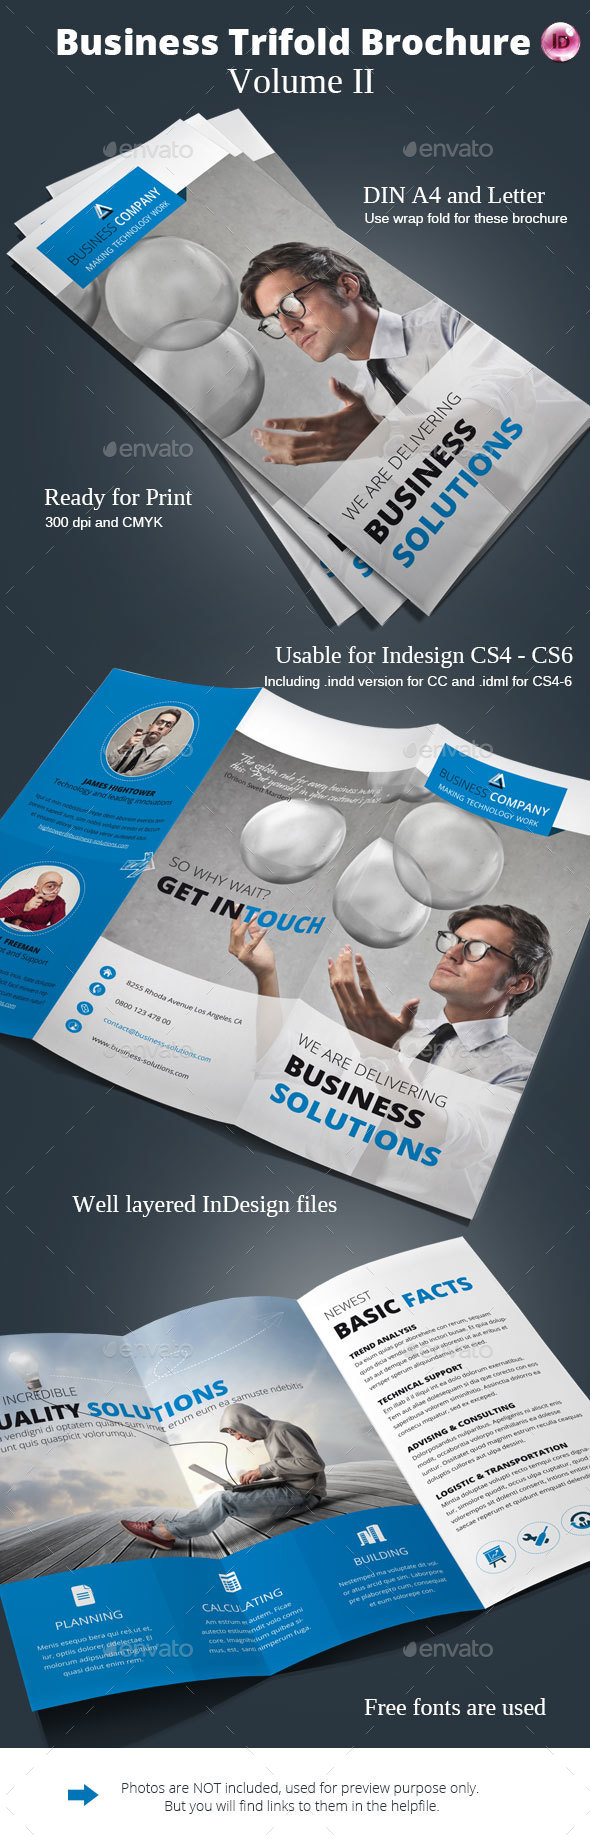 Business Trifold Brochure Vol. II - Corporate Brochures